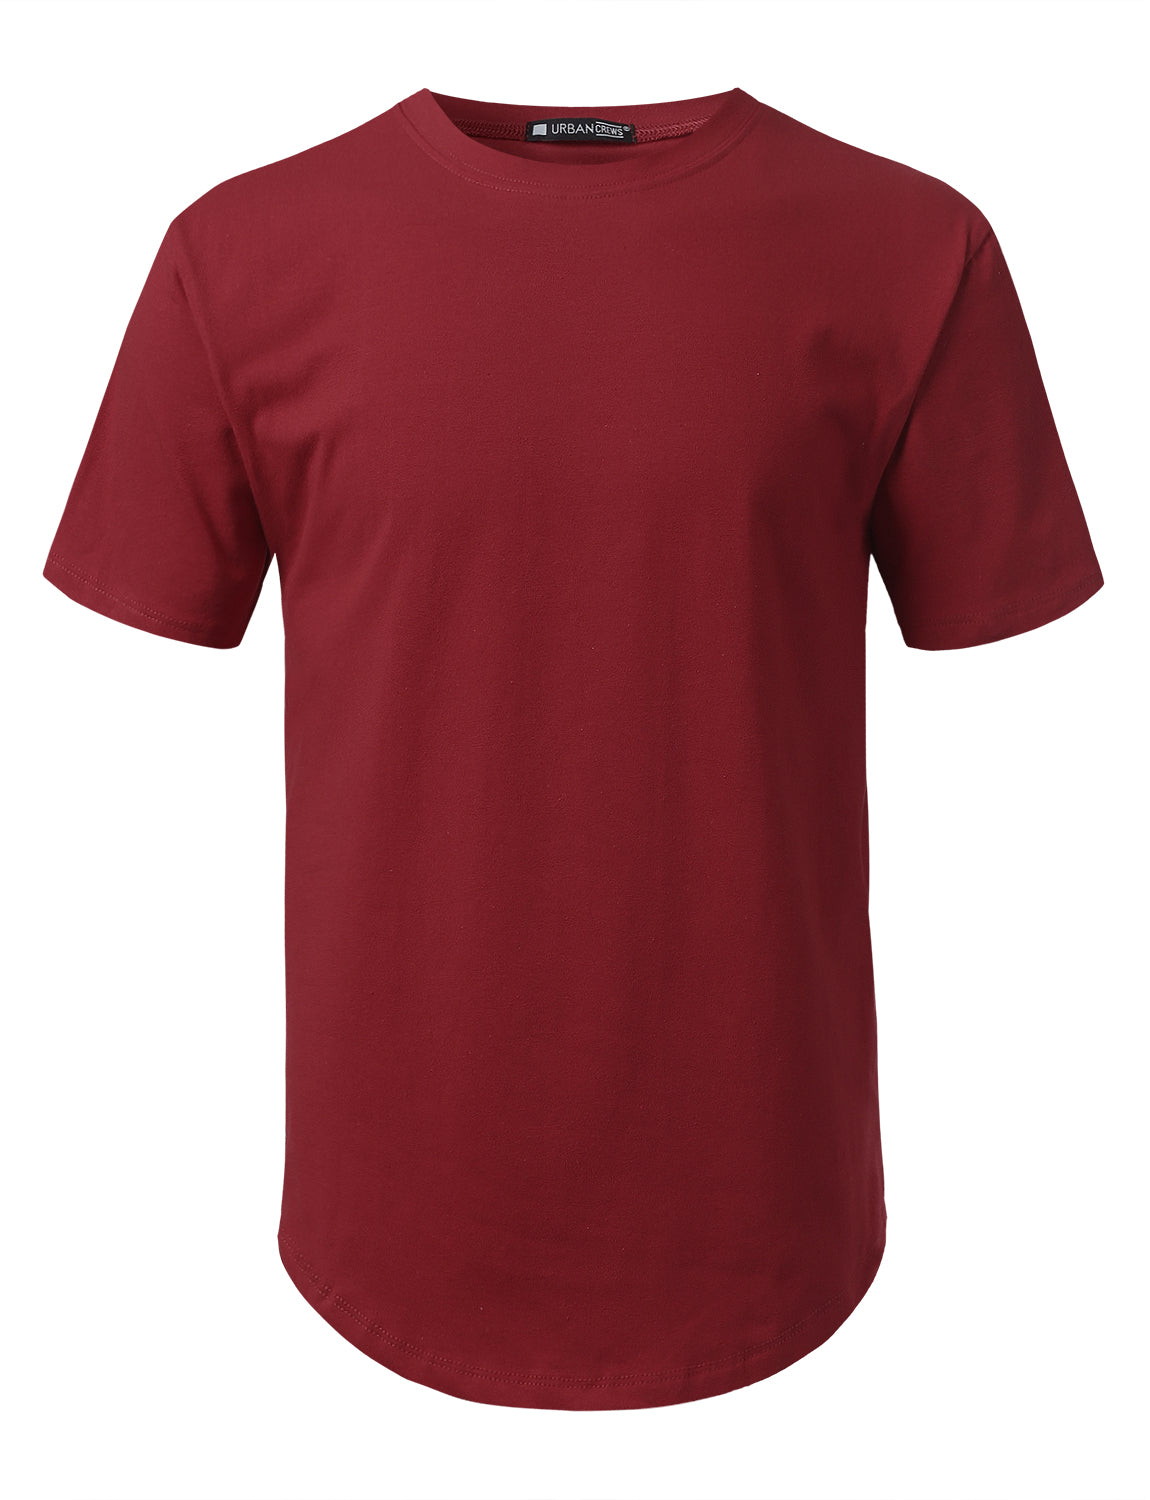 BURGUNDY Solid Color Cotton T-shirt - URBANCREWS